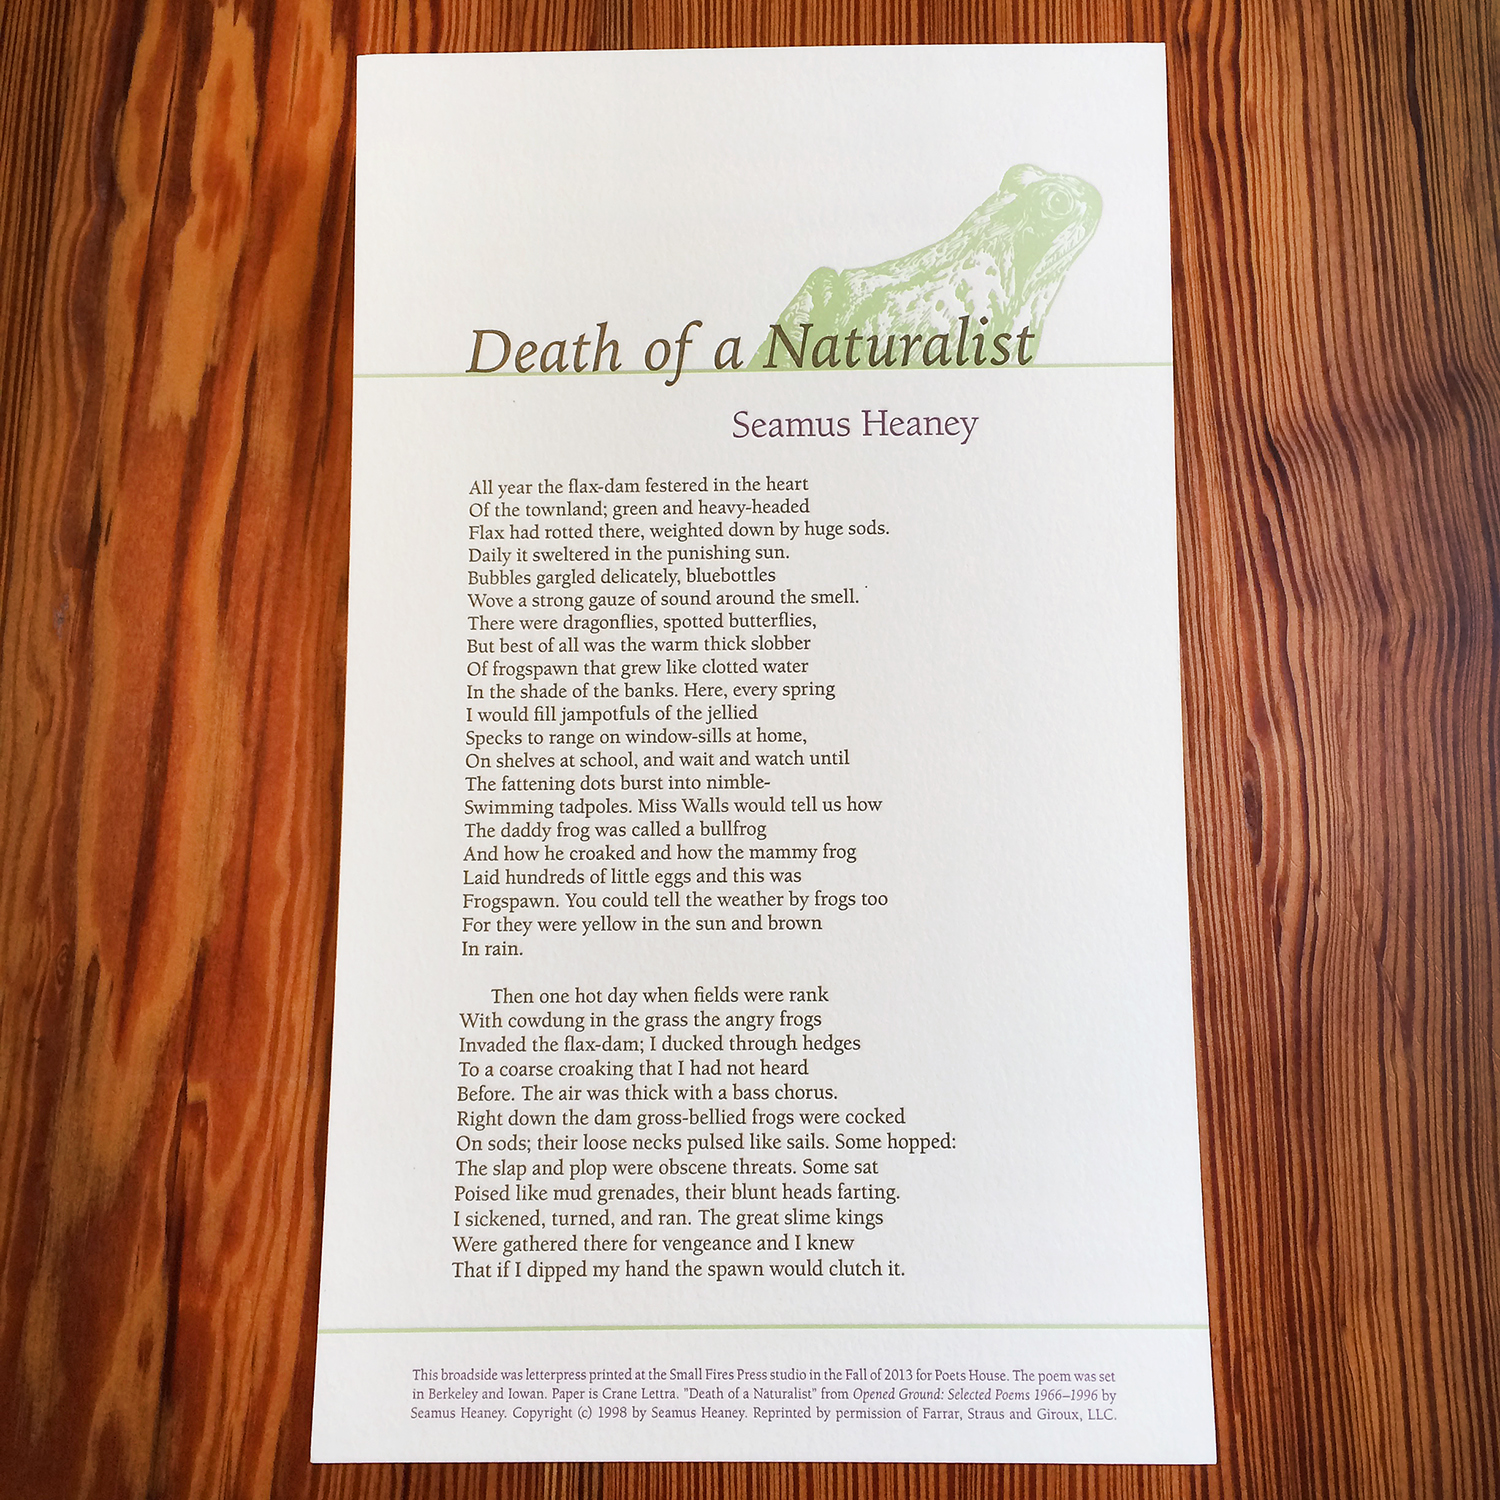 Death of a Naturalist - Seamus Heaney - Letterpress Broadside - Poets House.jpg